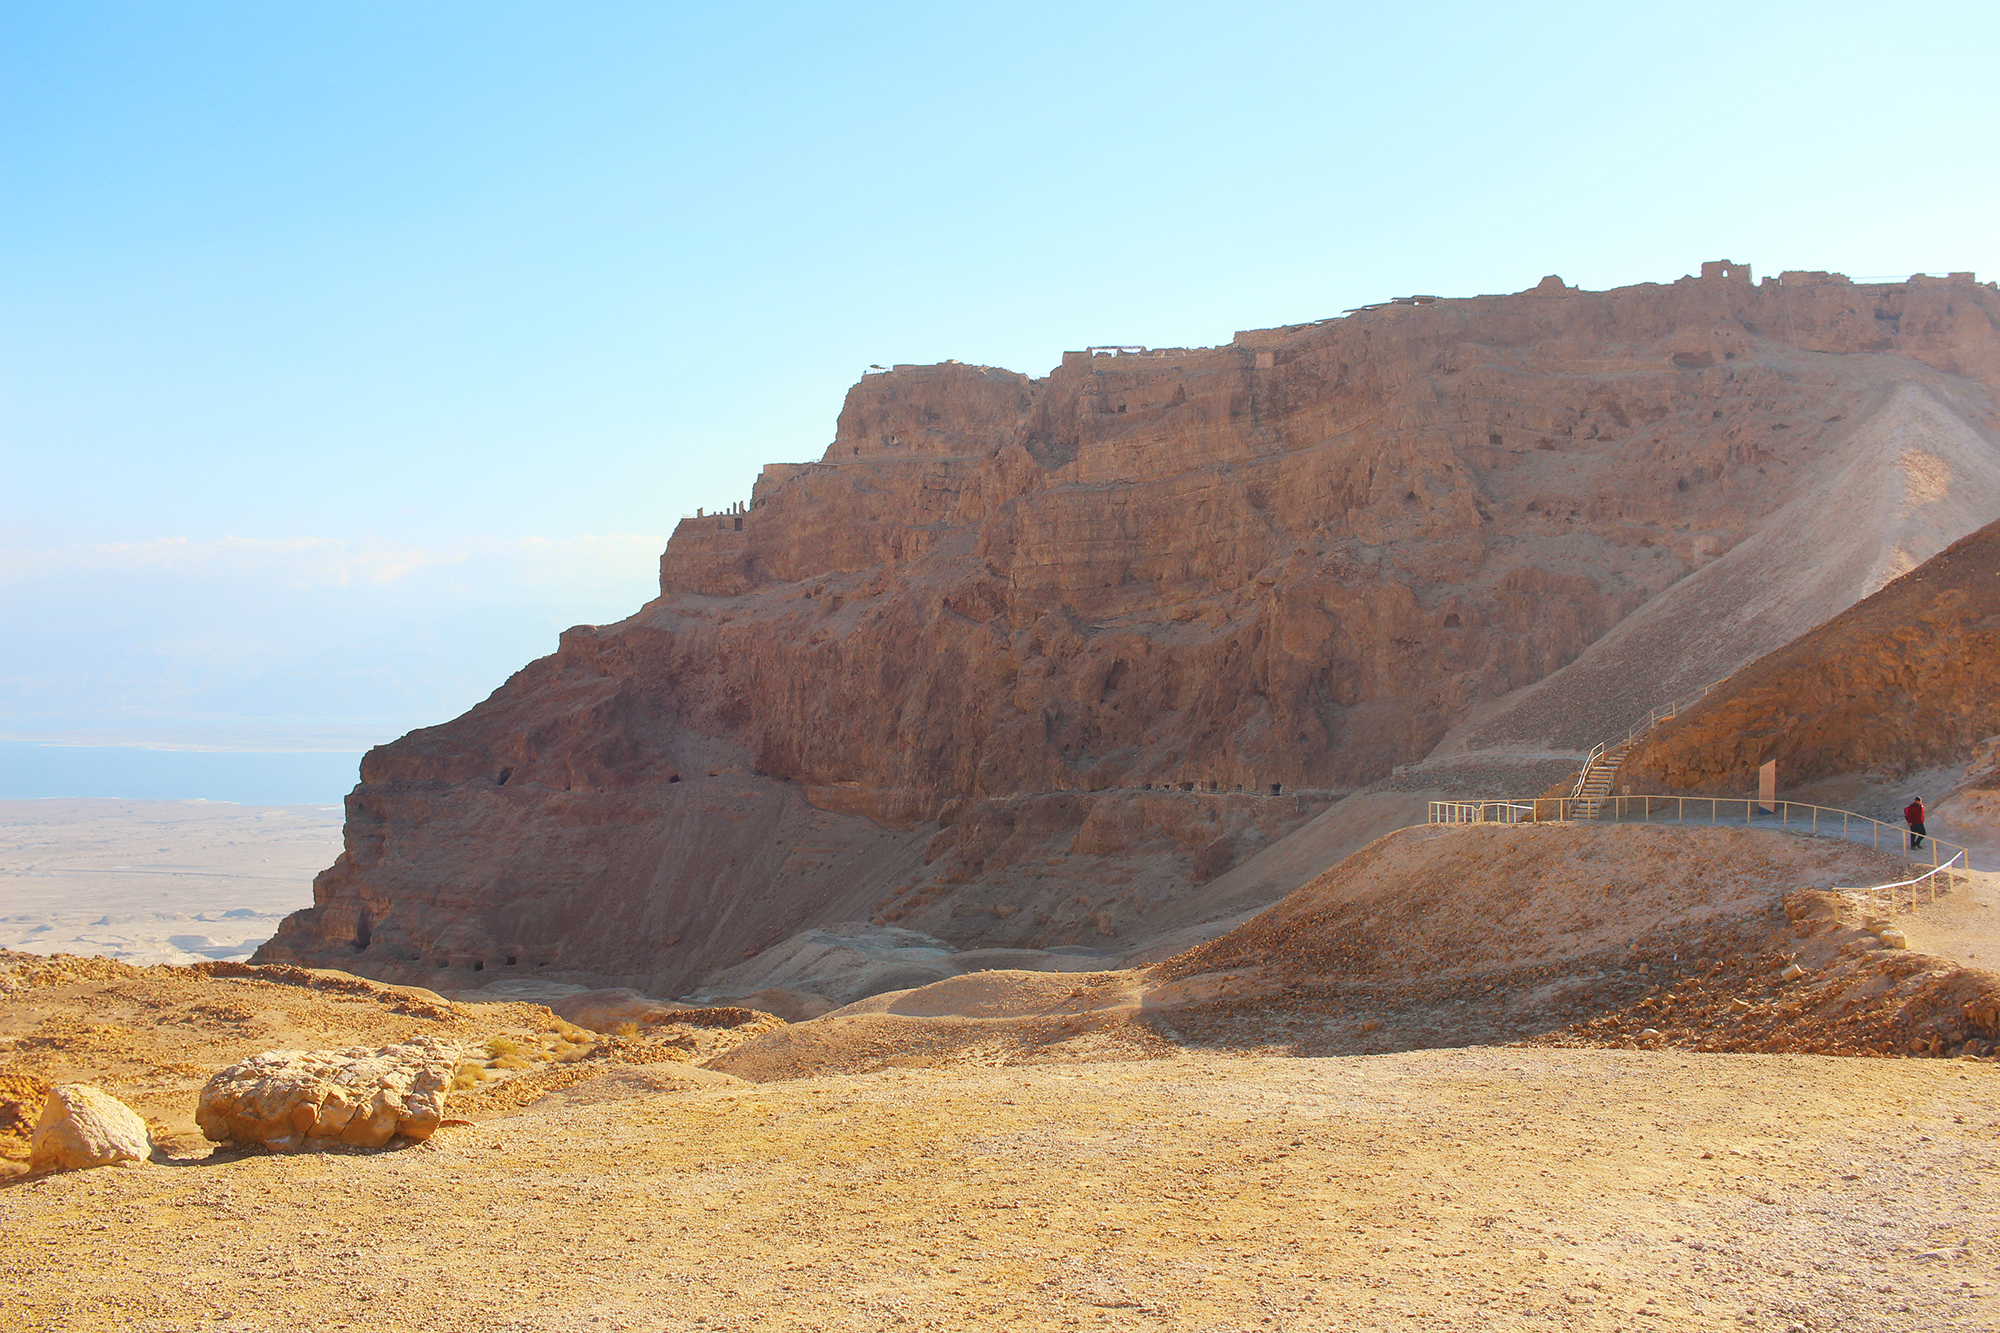 Sunrise hike up Masada in Israel. Travel photography by Geena Matuson @geenamatuson #thegirlmirage.